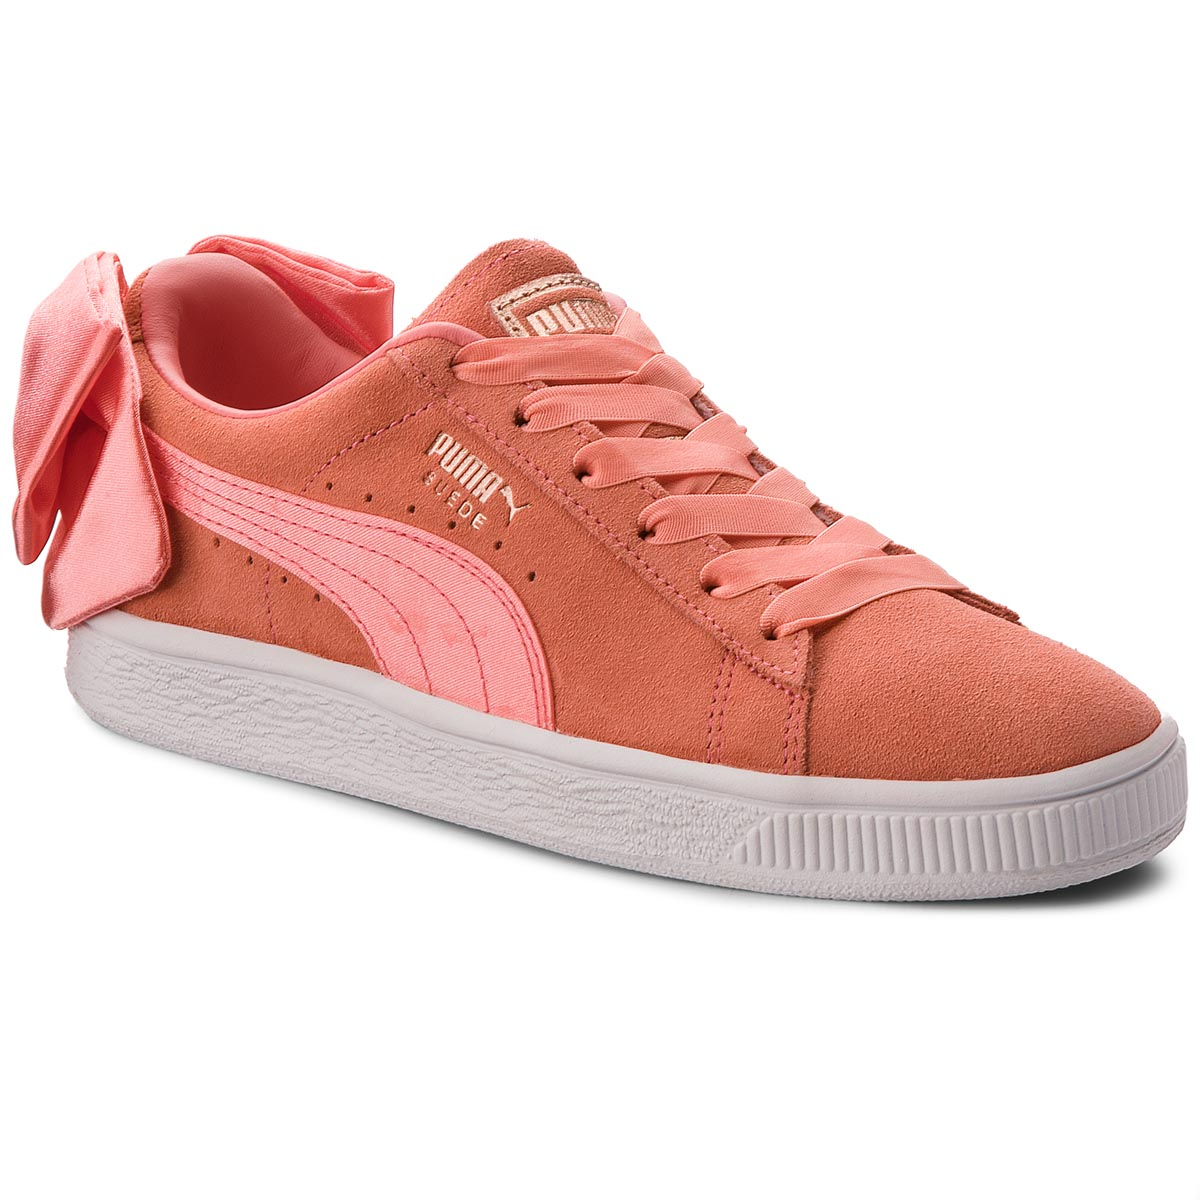 Sneakers PUMA - Suede Bow Jr 367316 01 Shell Pink/Shell Pink